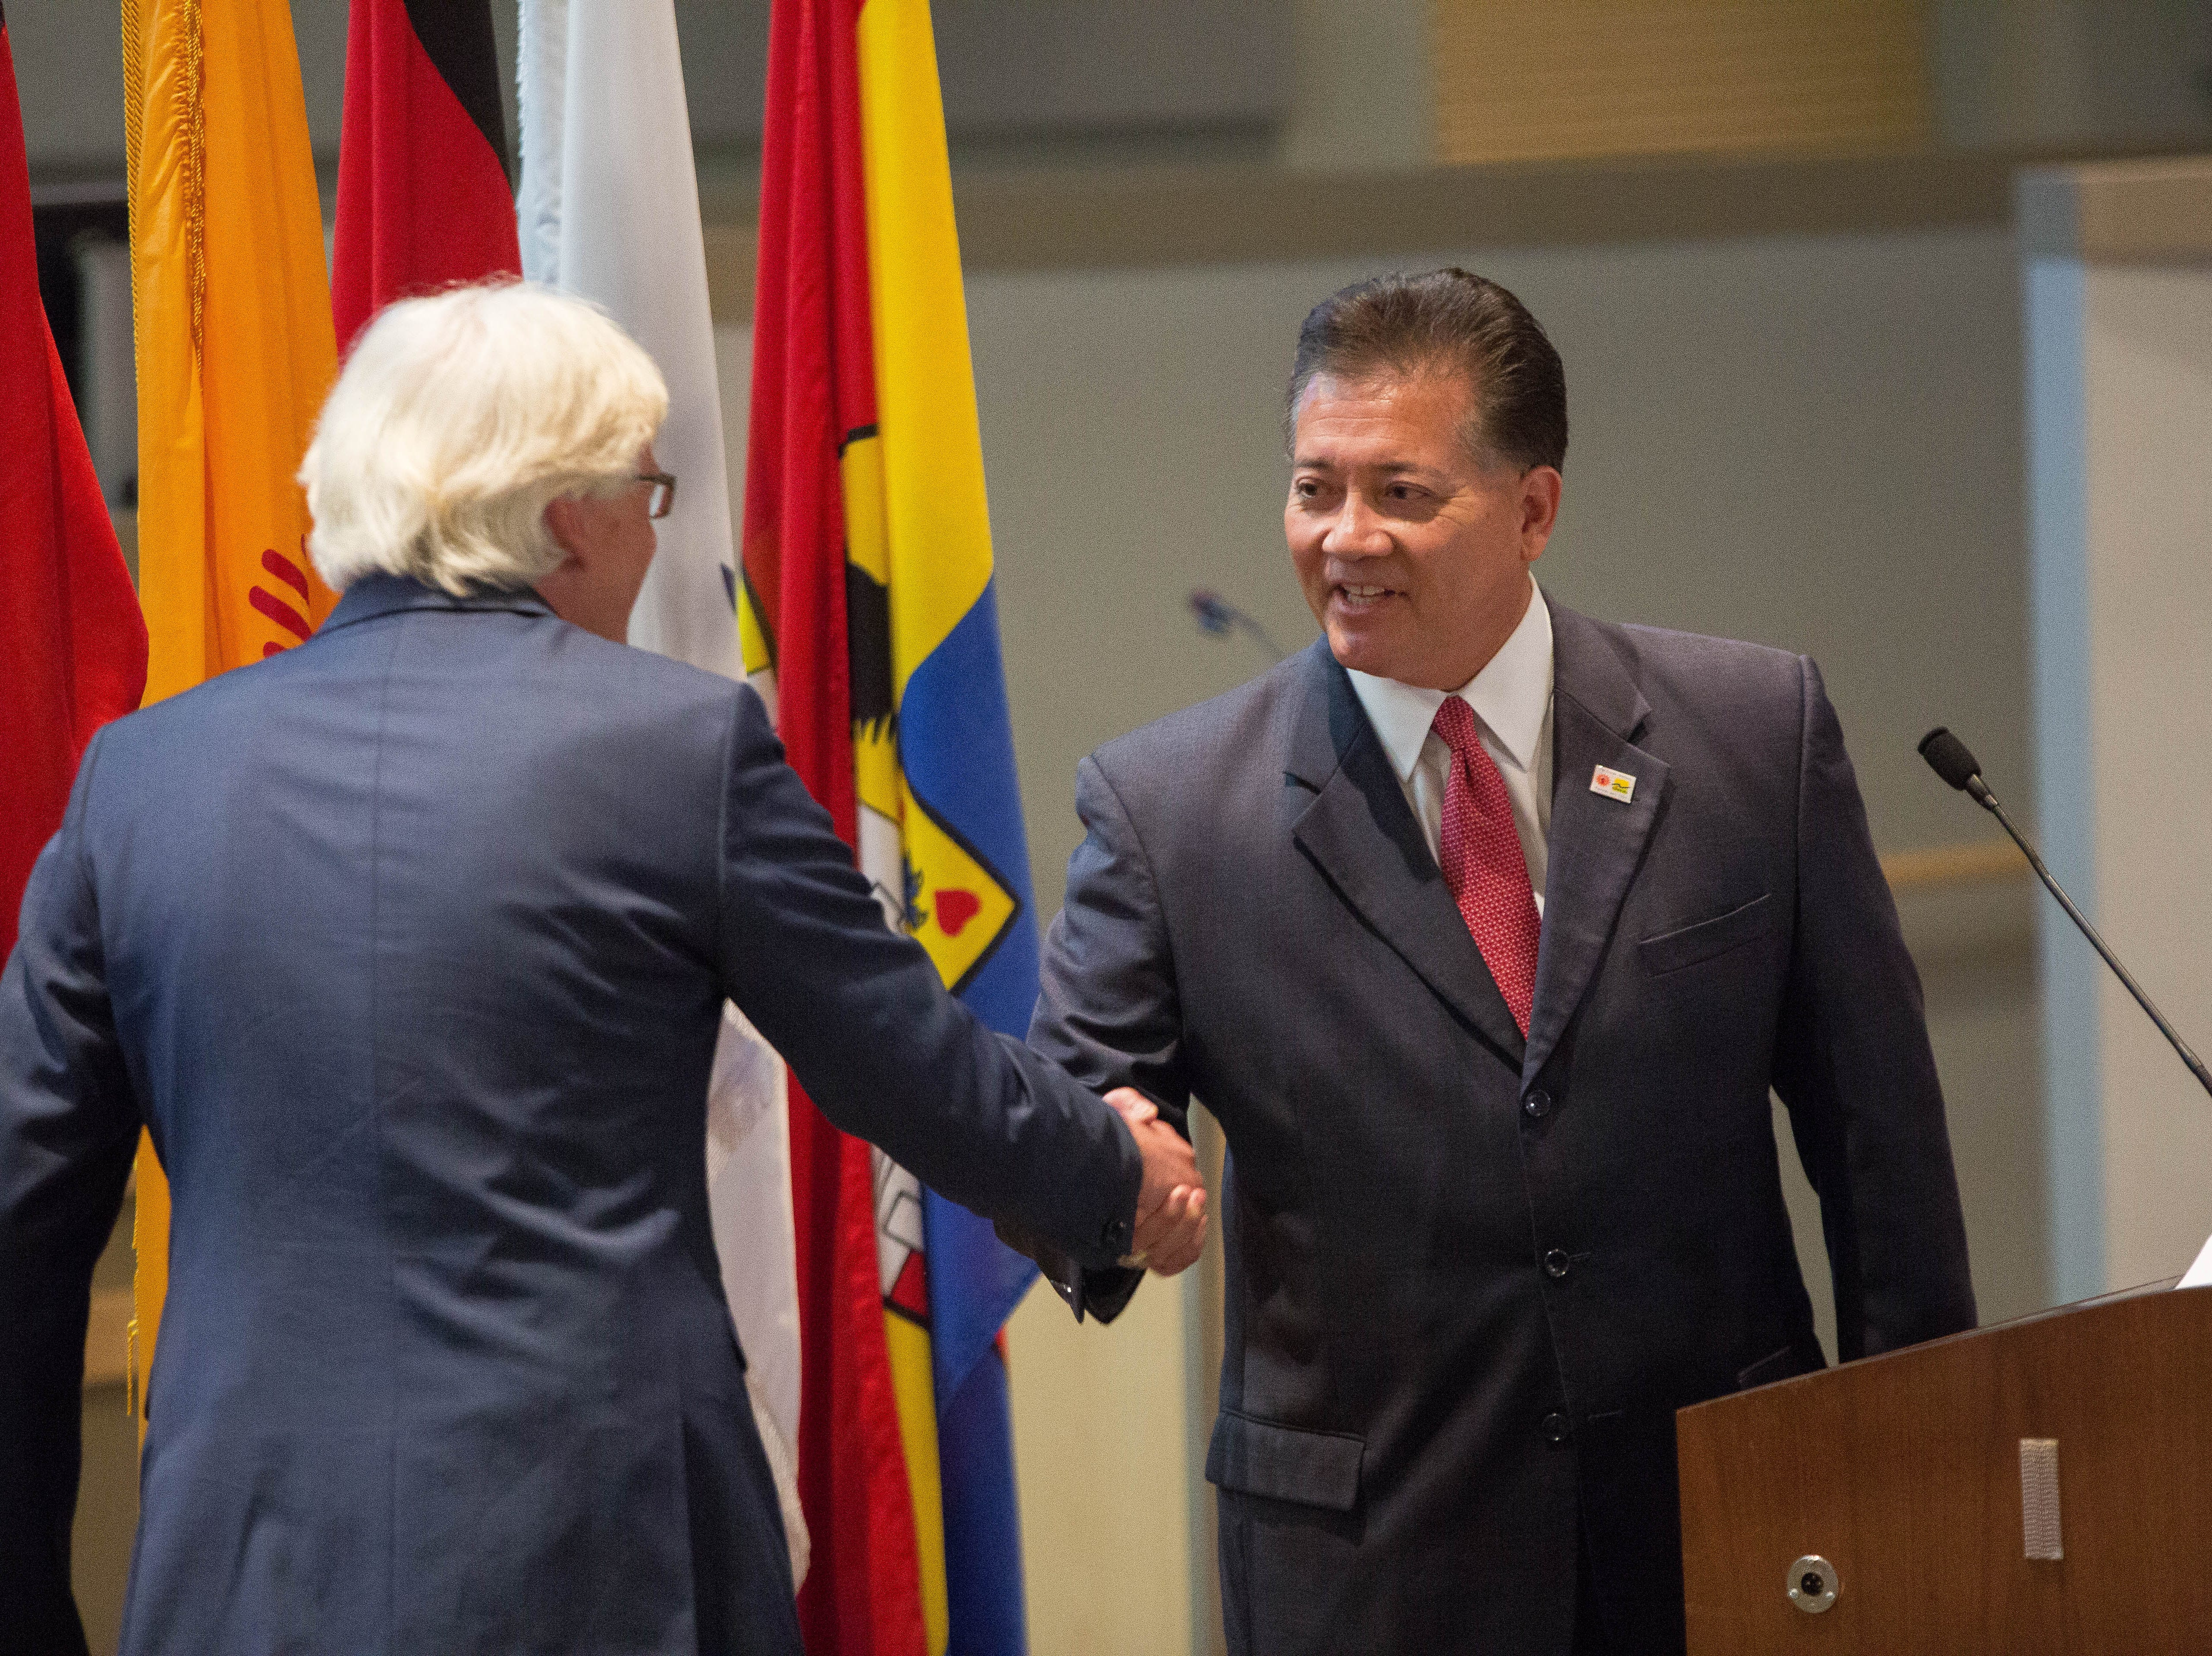 Ken Miyagishima, mayor of Las Cruces, shakes hands with Henning Onkes, the mayor of Nienburg, Germany.  The city of Las Cruces and representatives of Las Cruces' sister city Nienburg  Germany re affirmed the sister cities status, Monday, October 1, 2018, before the city council meeting at the Las Cruces City Council Chambers.